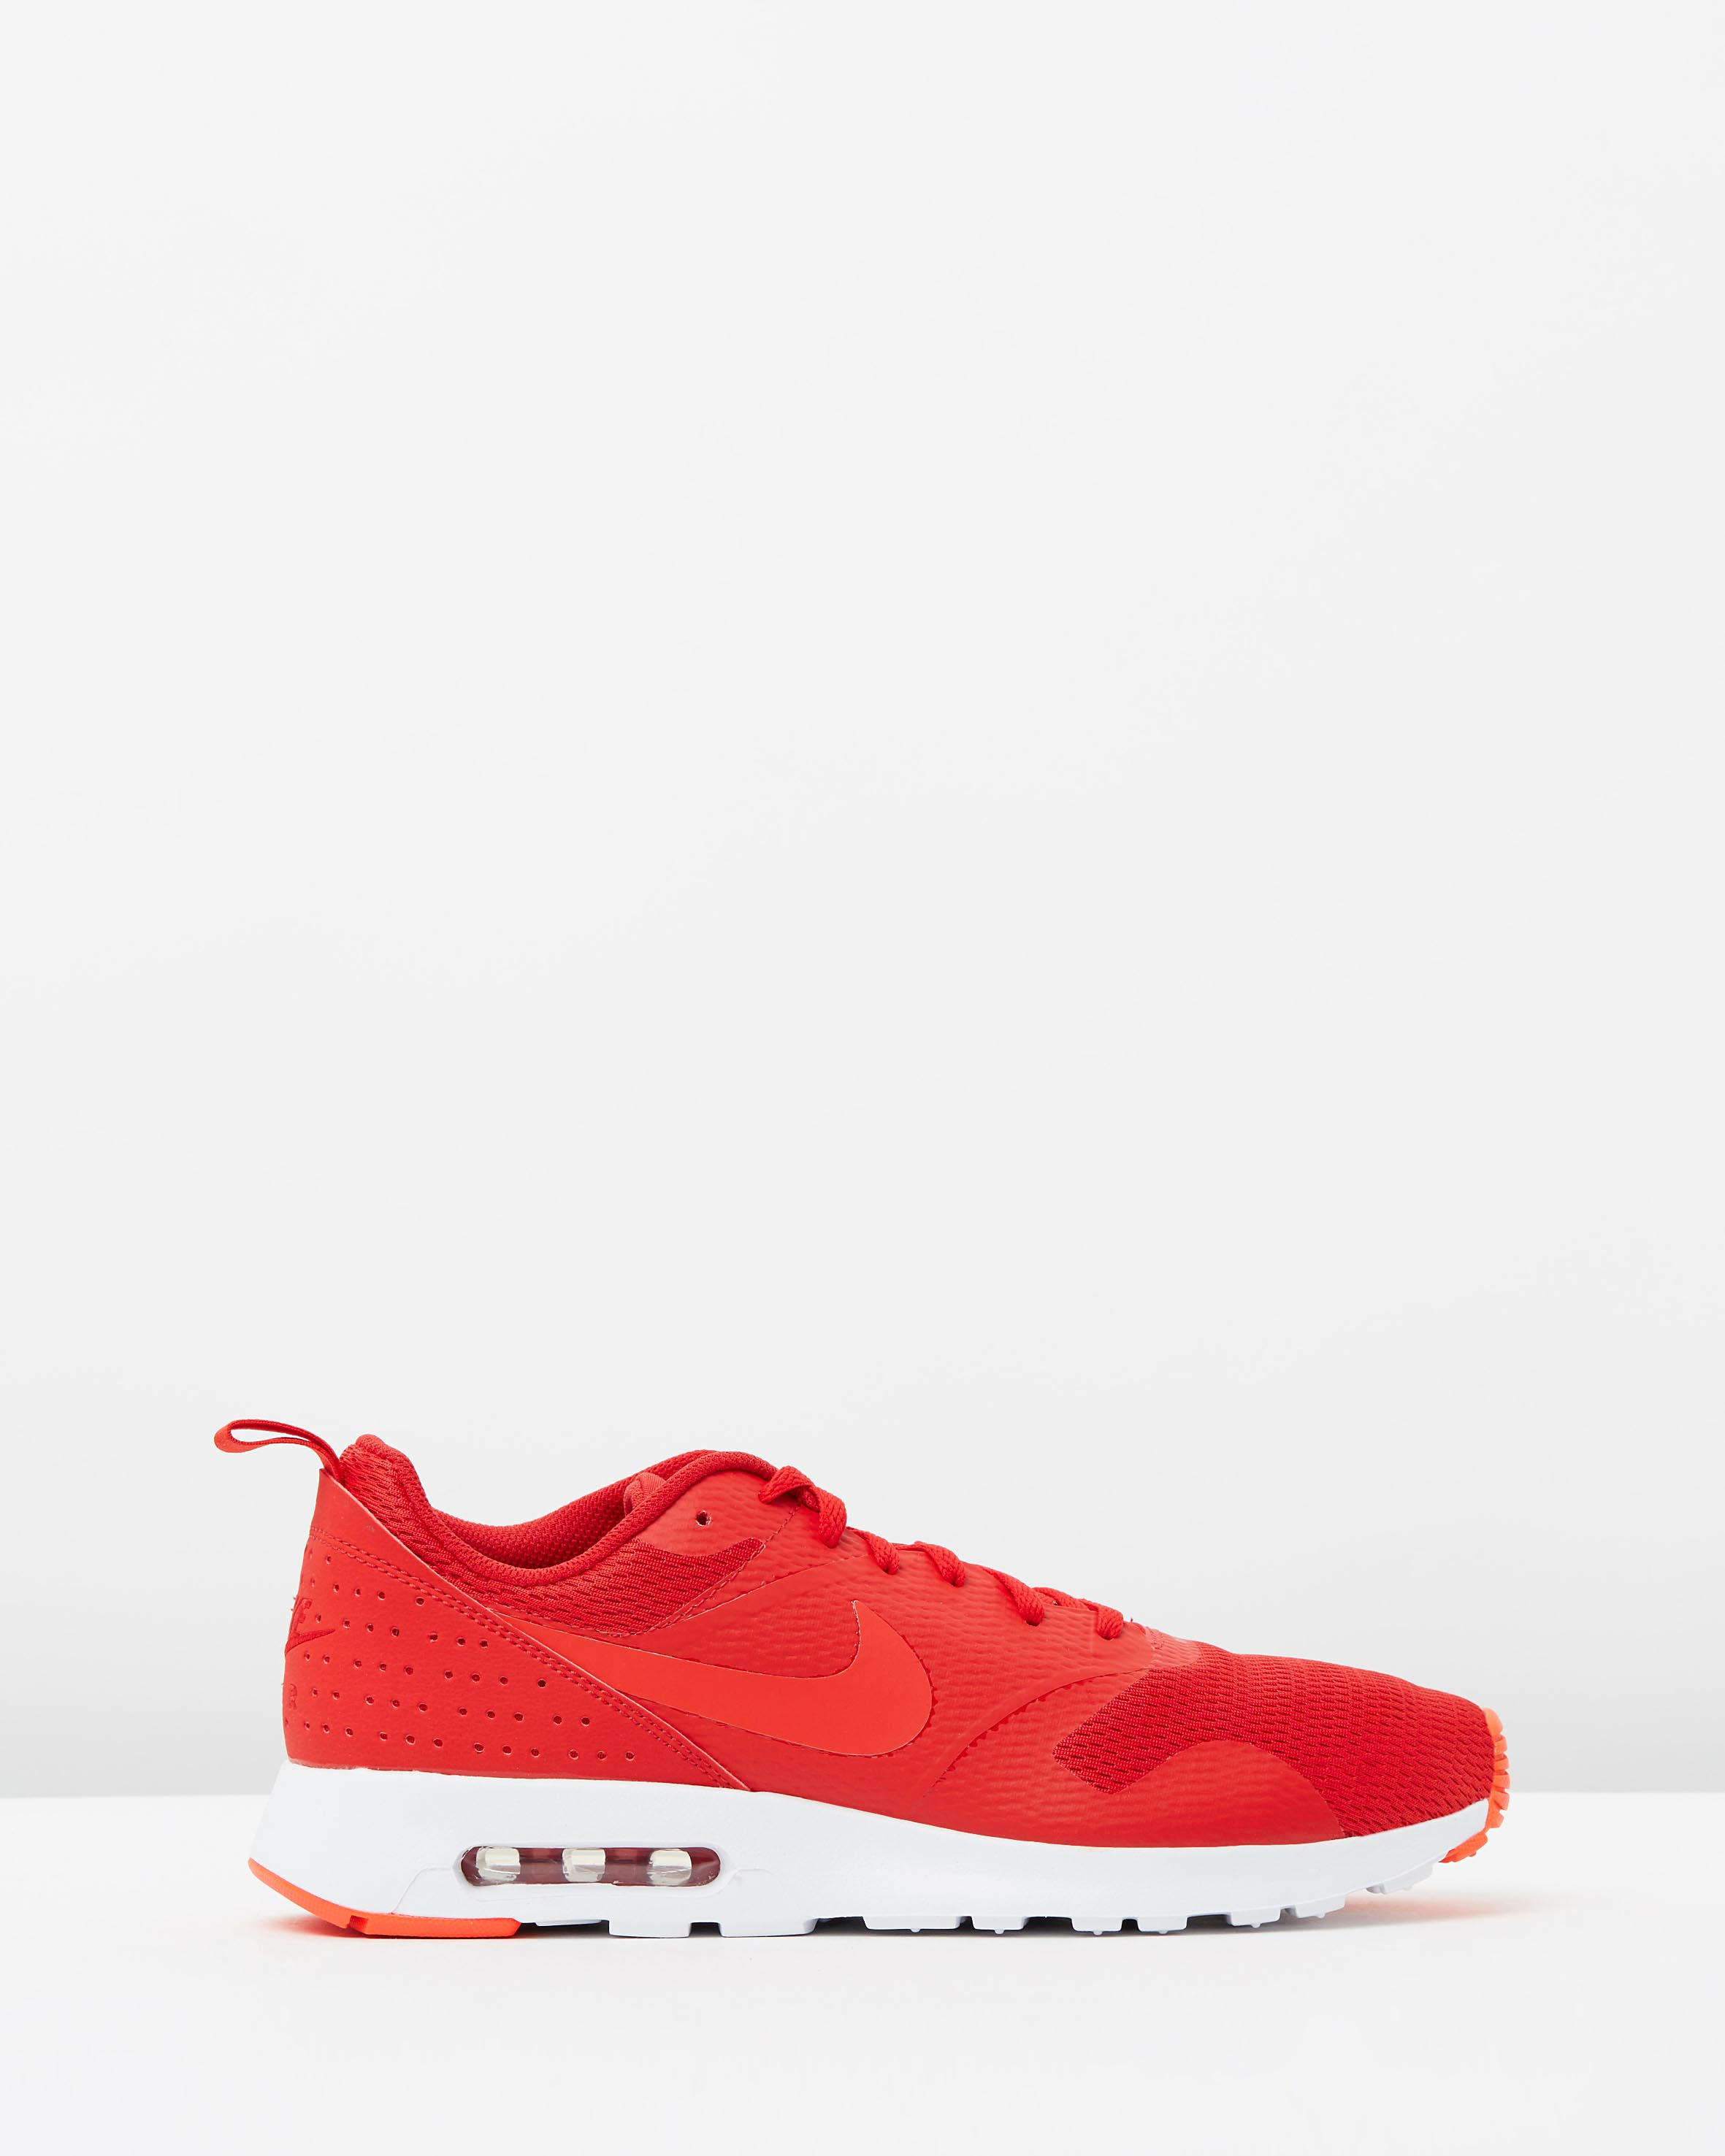 nike men s air max tavas leather university red sneaker. Black Bedroom Furniture Sets. Home Design Ideas